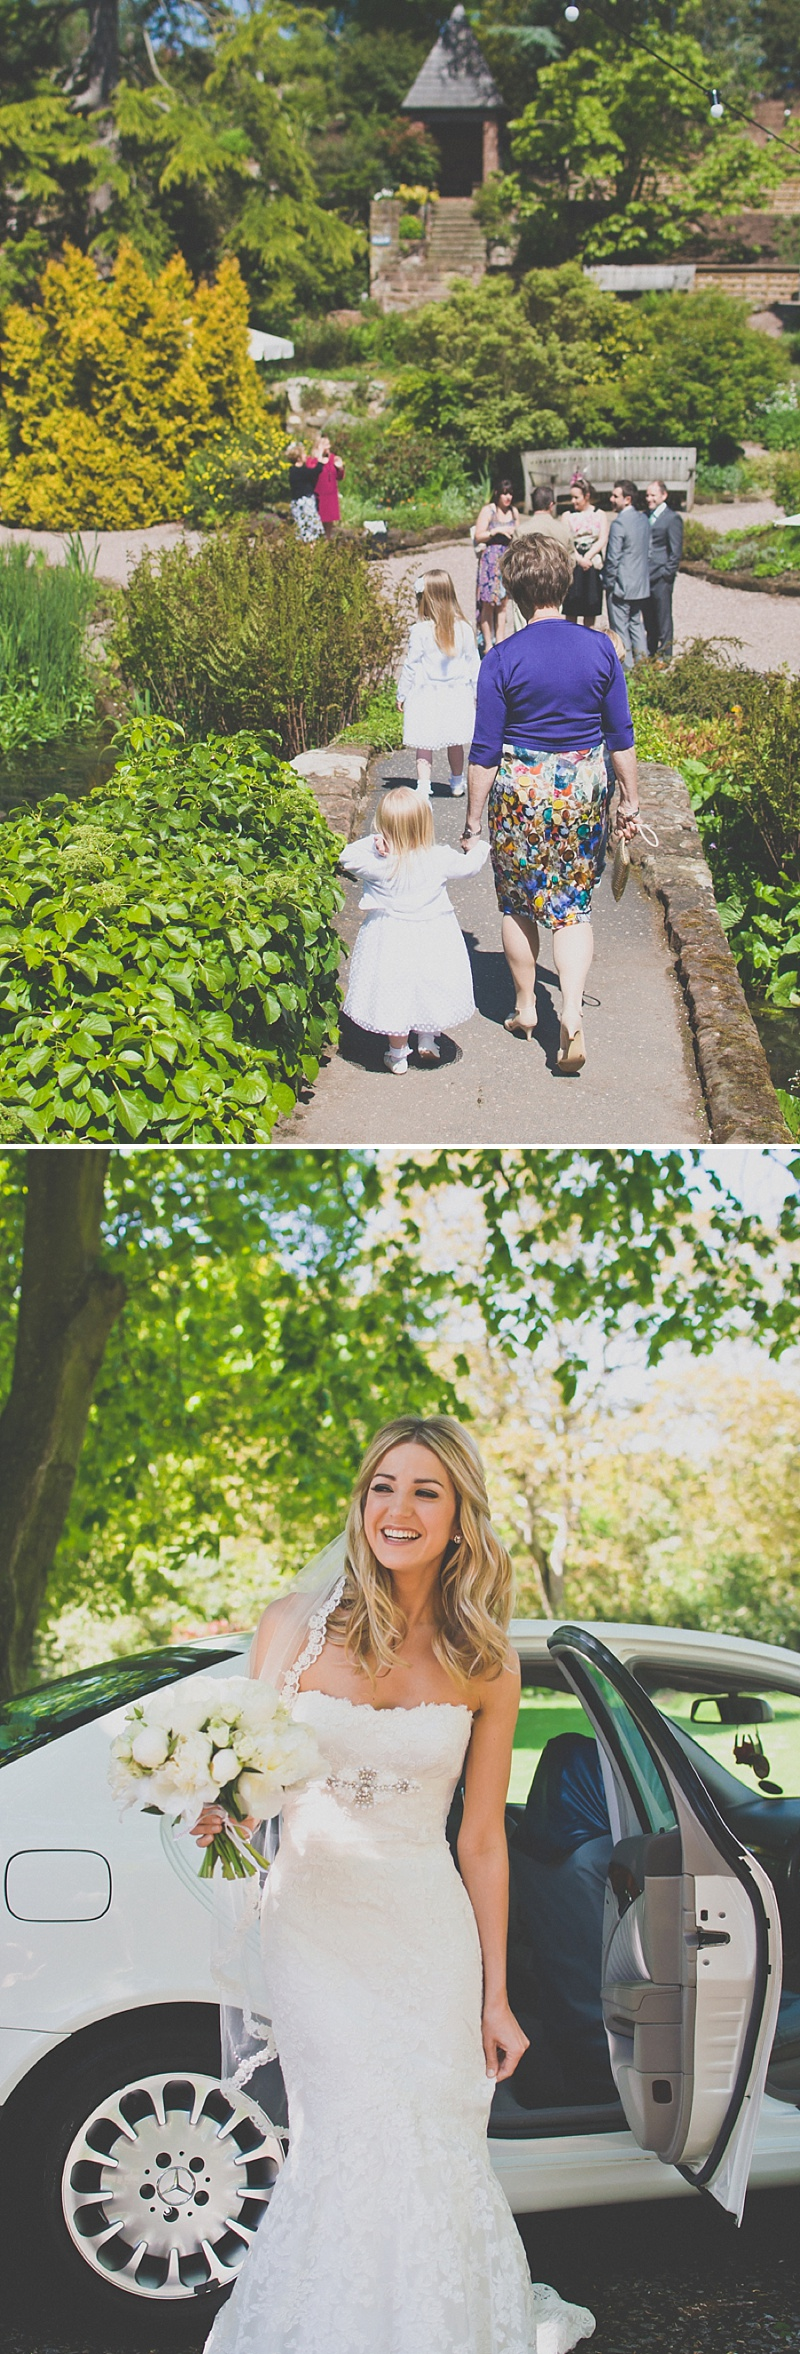 An Elegant White Themed Wedding At The Ness Botanic Gardens With Bride In Champagne From Blue By Enzoani With Aldo 'Corinne' Shoes Images By Rivington Photography_0018